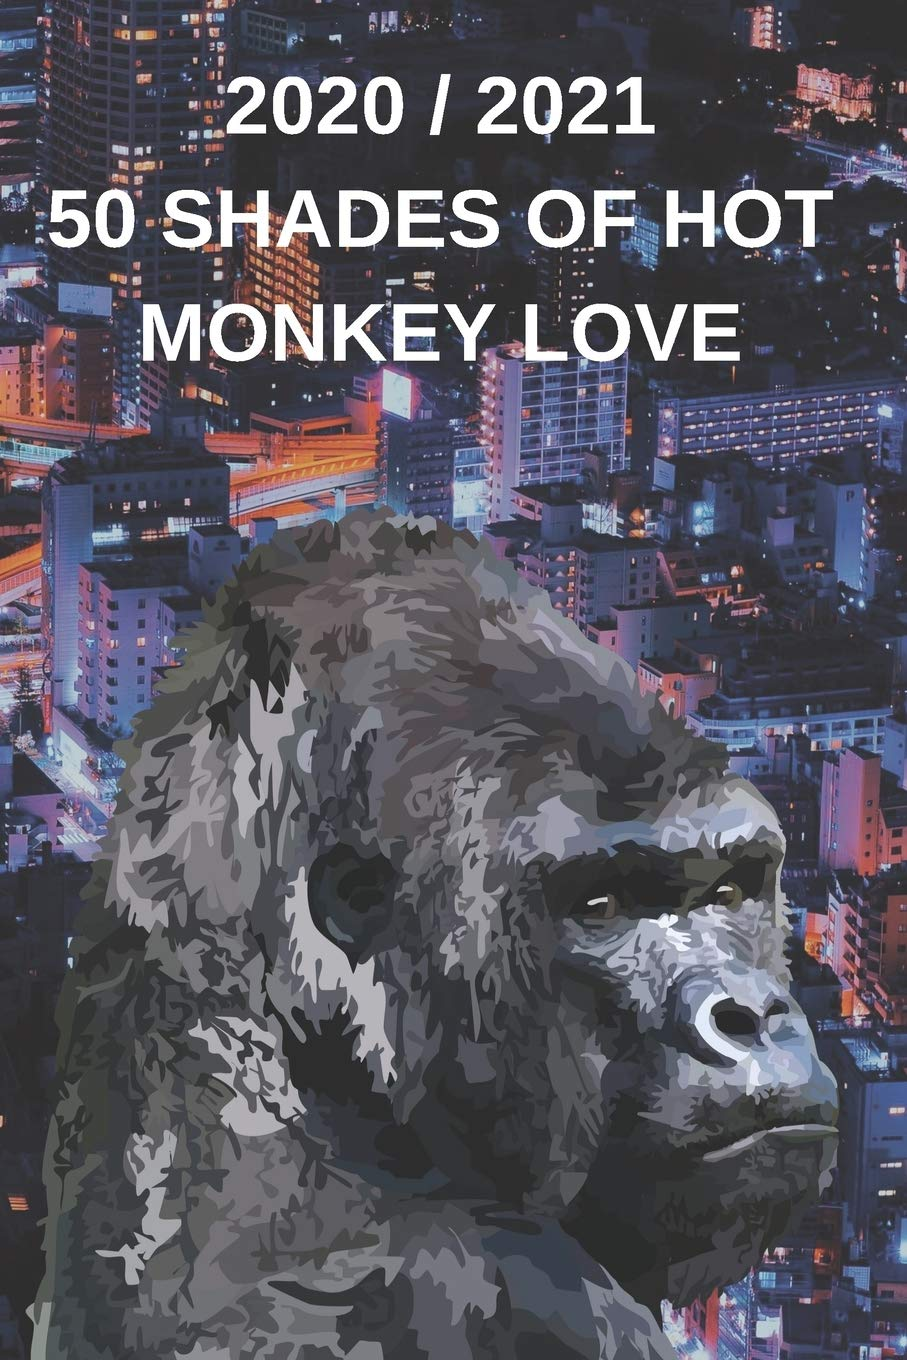 Buy 2020 2021 Weekly Planner 50 Shades Of Monkey Love Appointment Book Gift Funny Gorilla Meme Cover Two Year Agenda Notebook King Kong Art Logbook